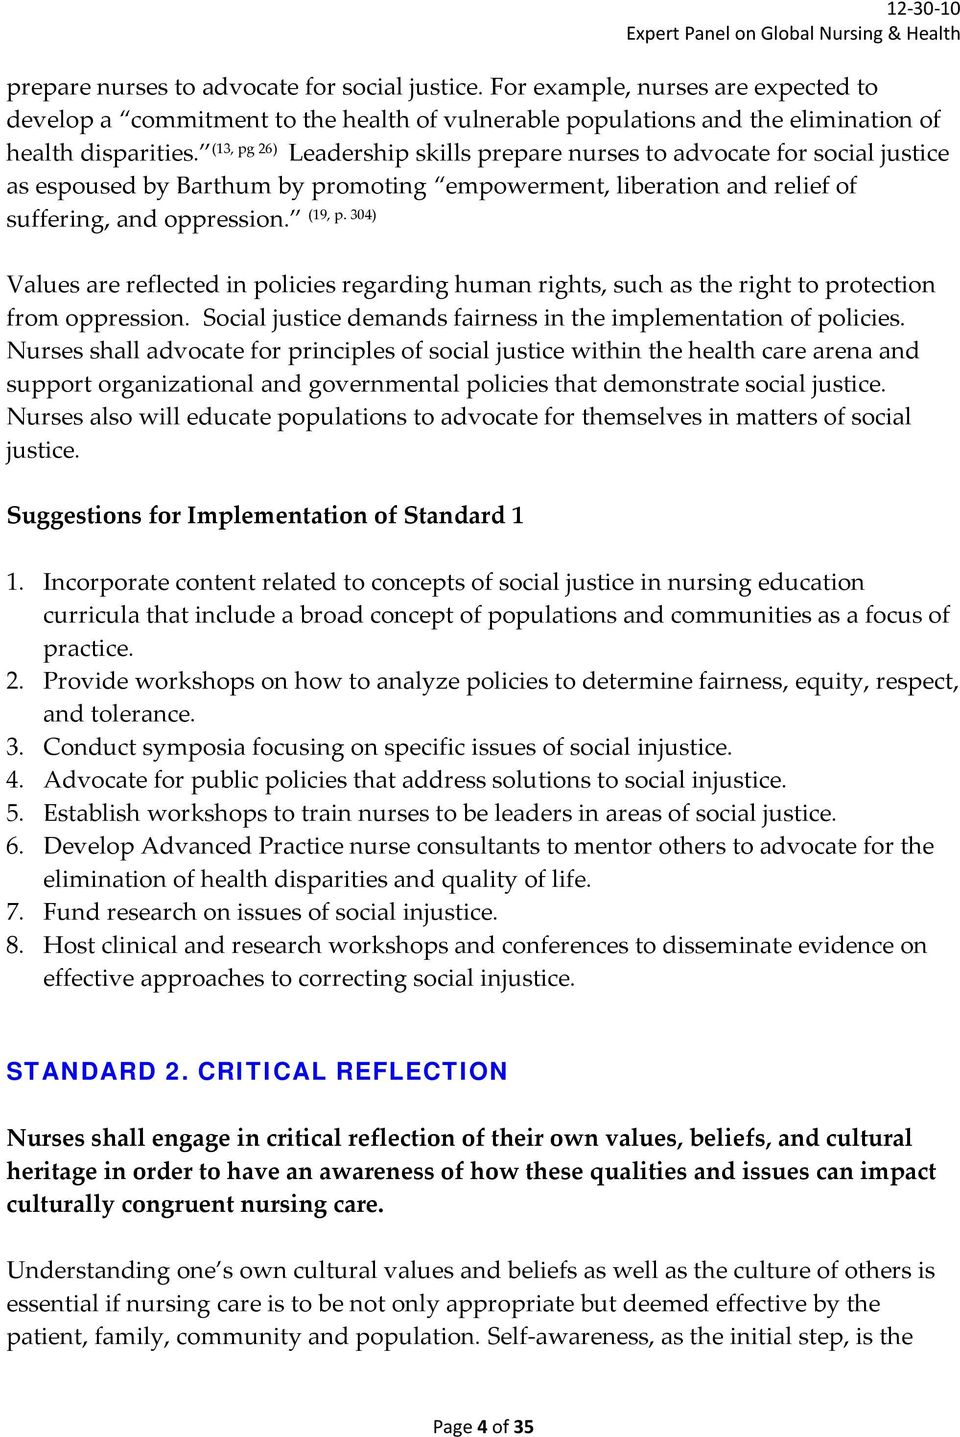 Values are reflected in policies regarding human rights, such as the right to protection from oppression. Social justice demands fairness in the implementation of policies.